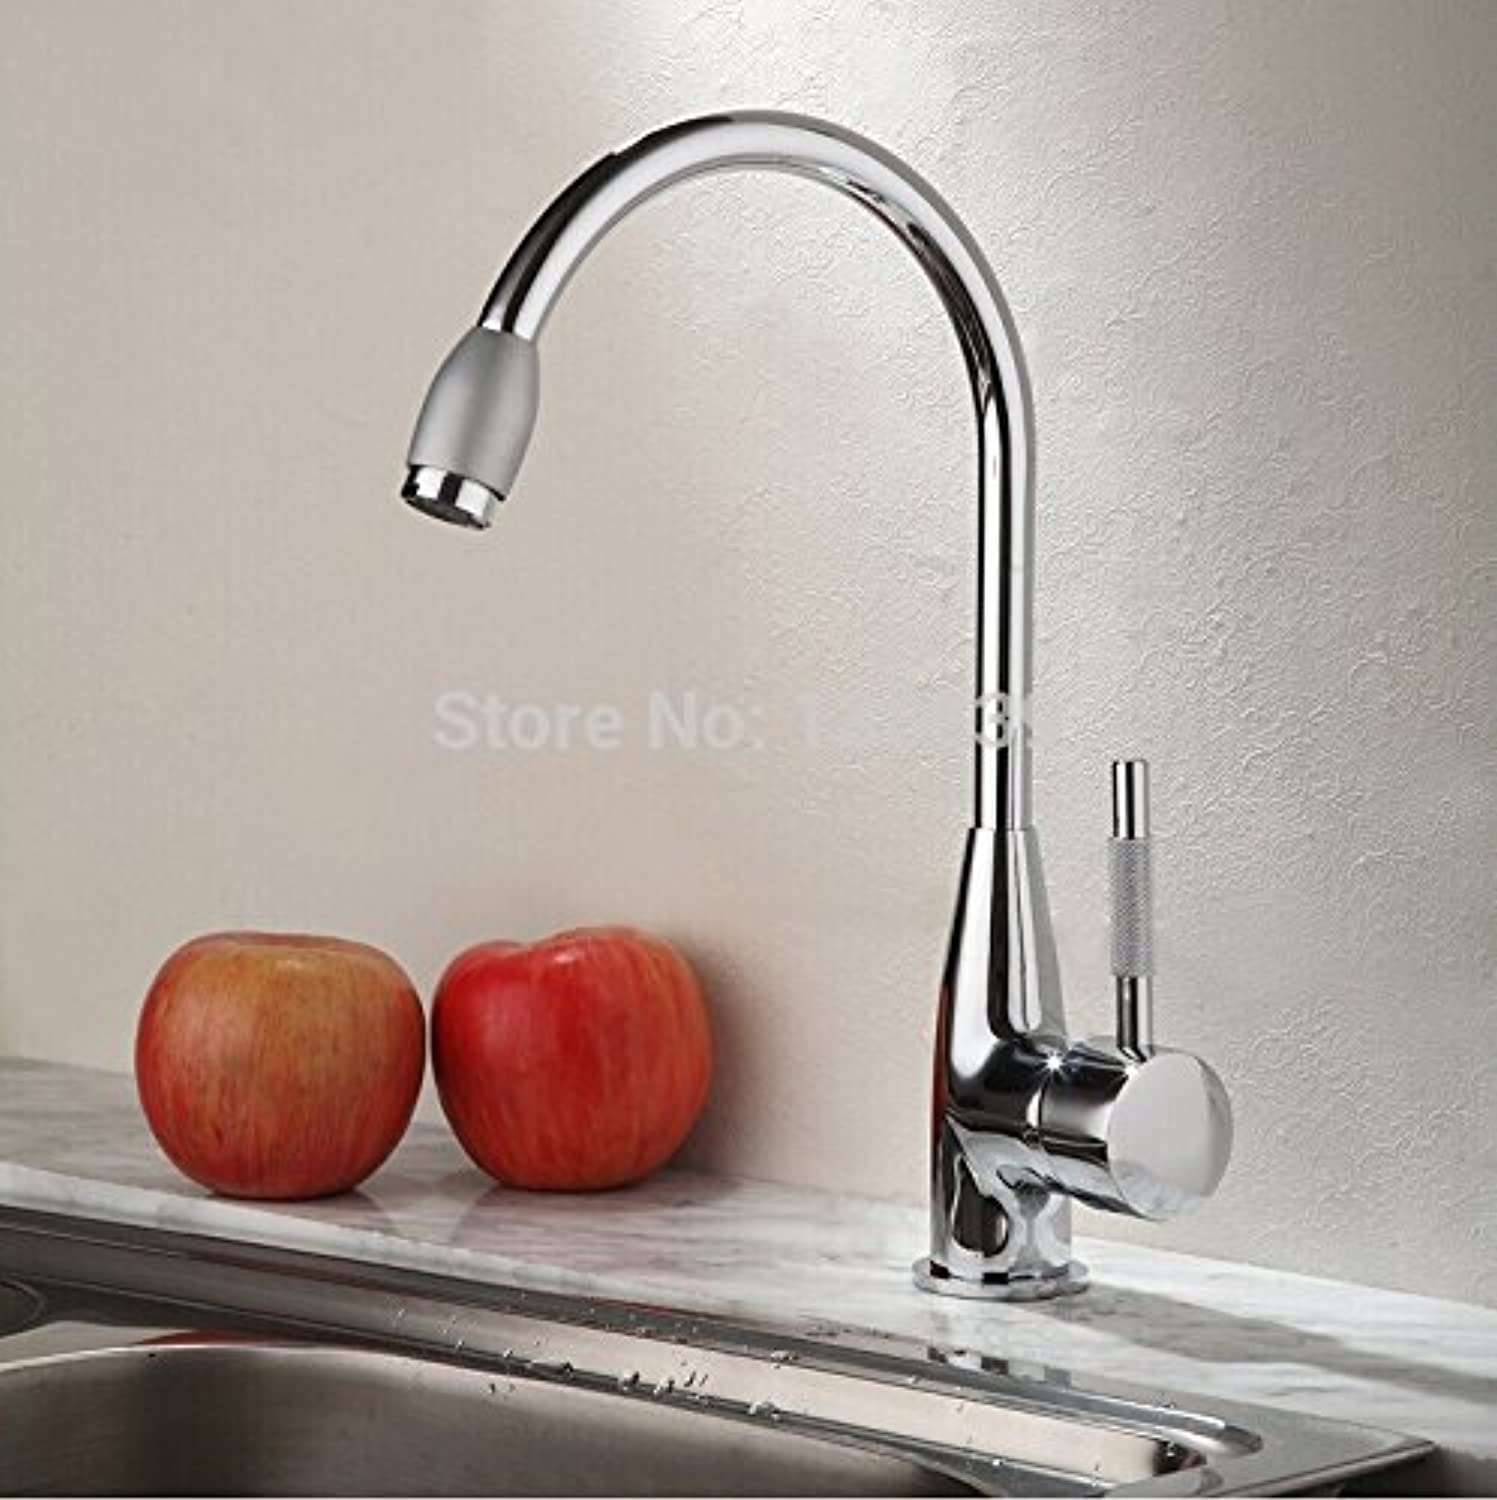 Retro Deluxe Faucetinging Free Shipping Wholesale and Modern Kitchen Faucet,Single Handle Chrome Polish hot and Cold Water Kitchen tap,torneira cozinha,White